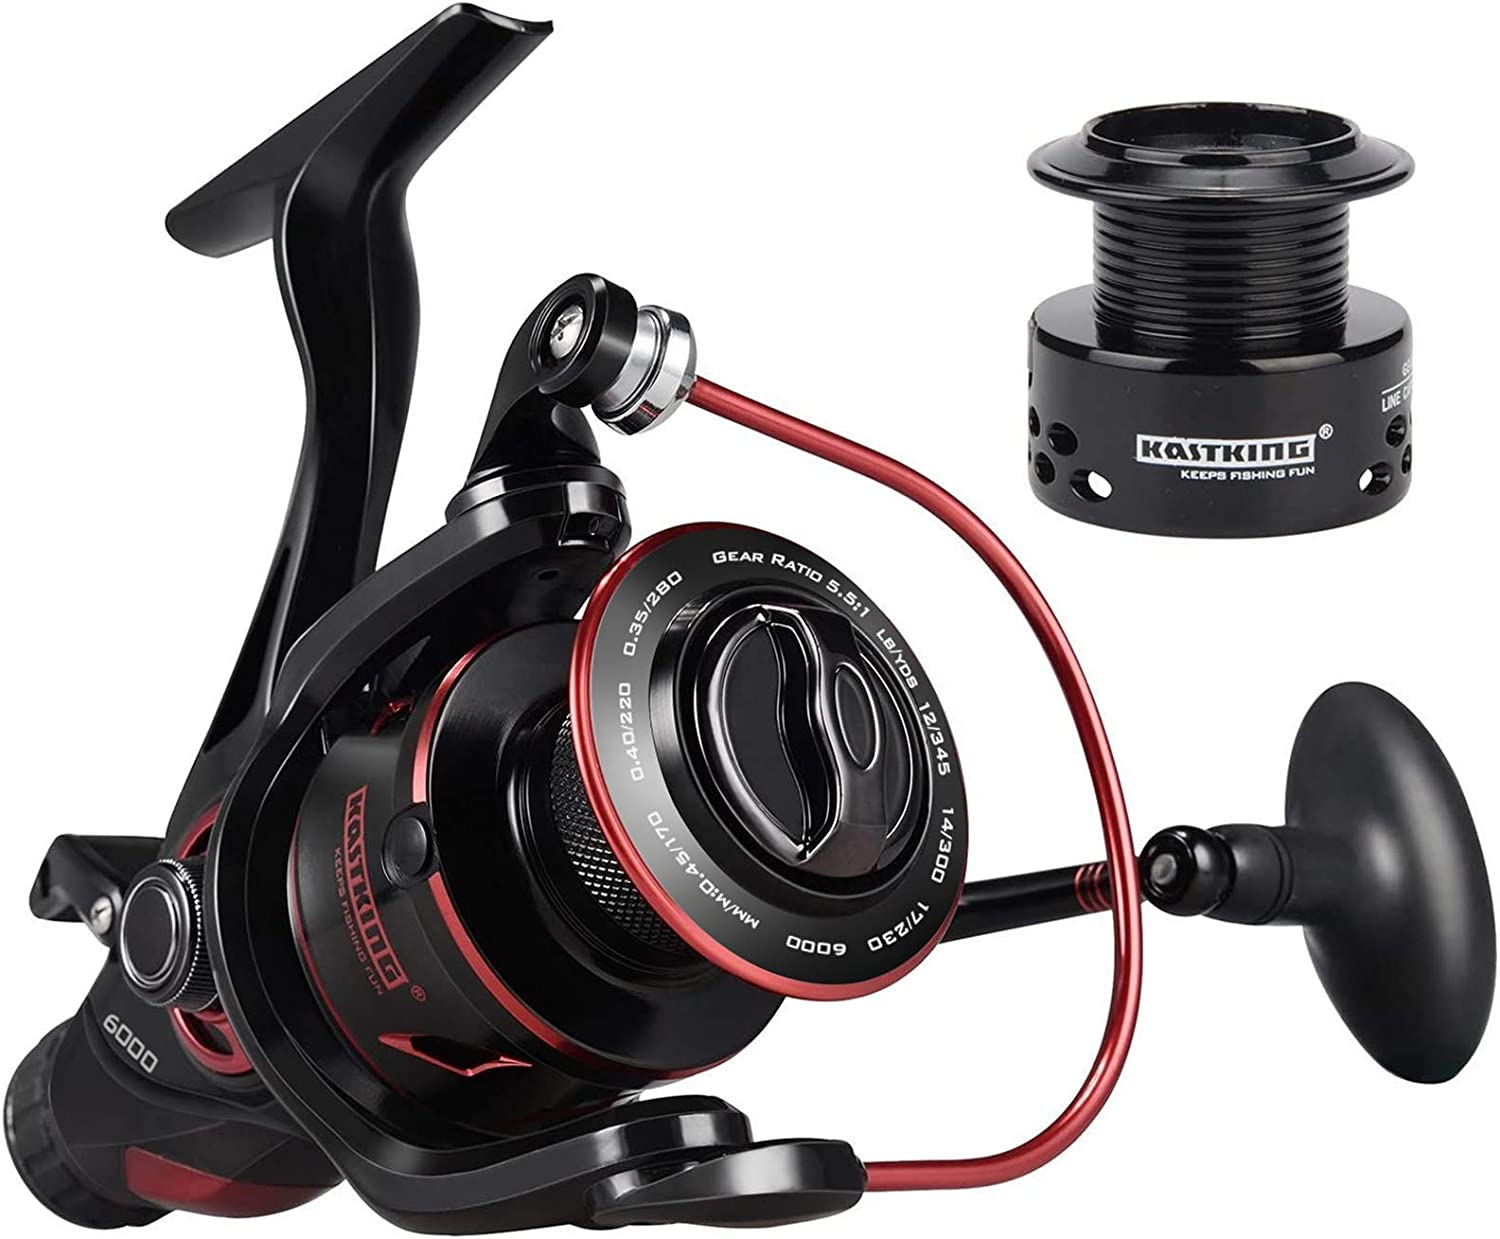 Kastking Sharky Baitfeeder Spinning Iii Reel